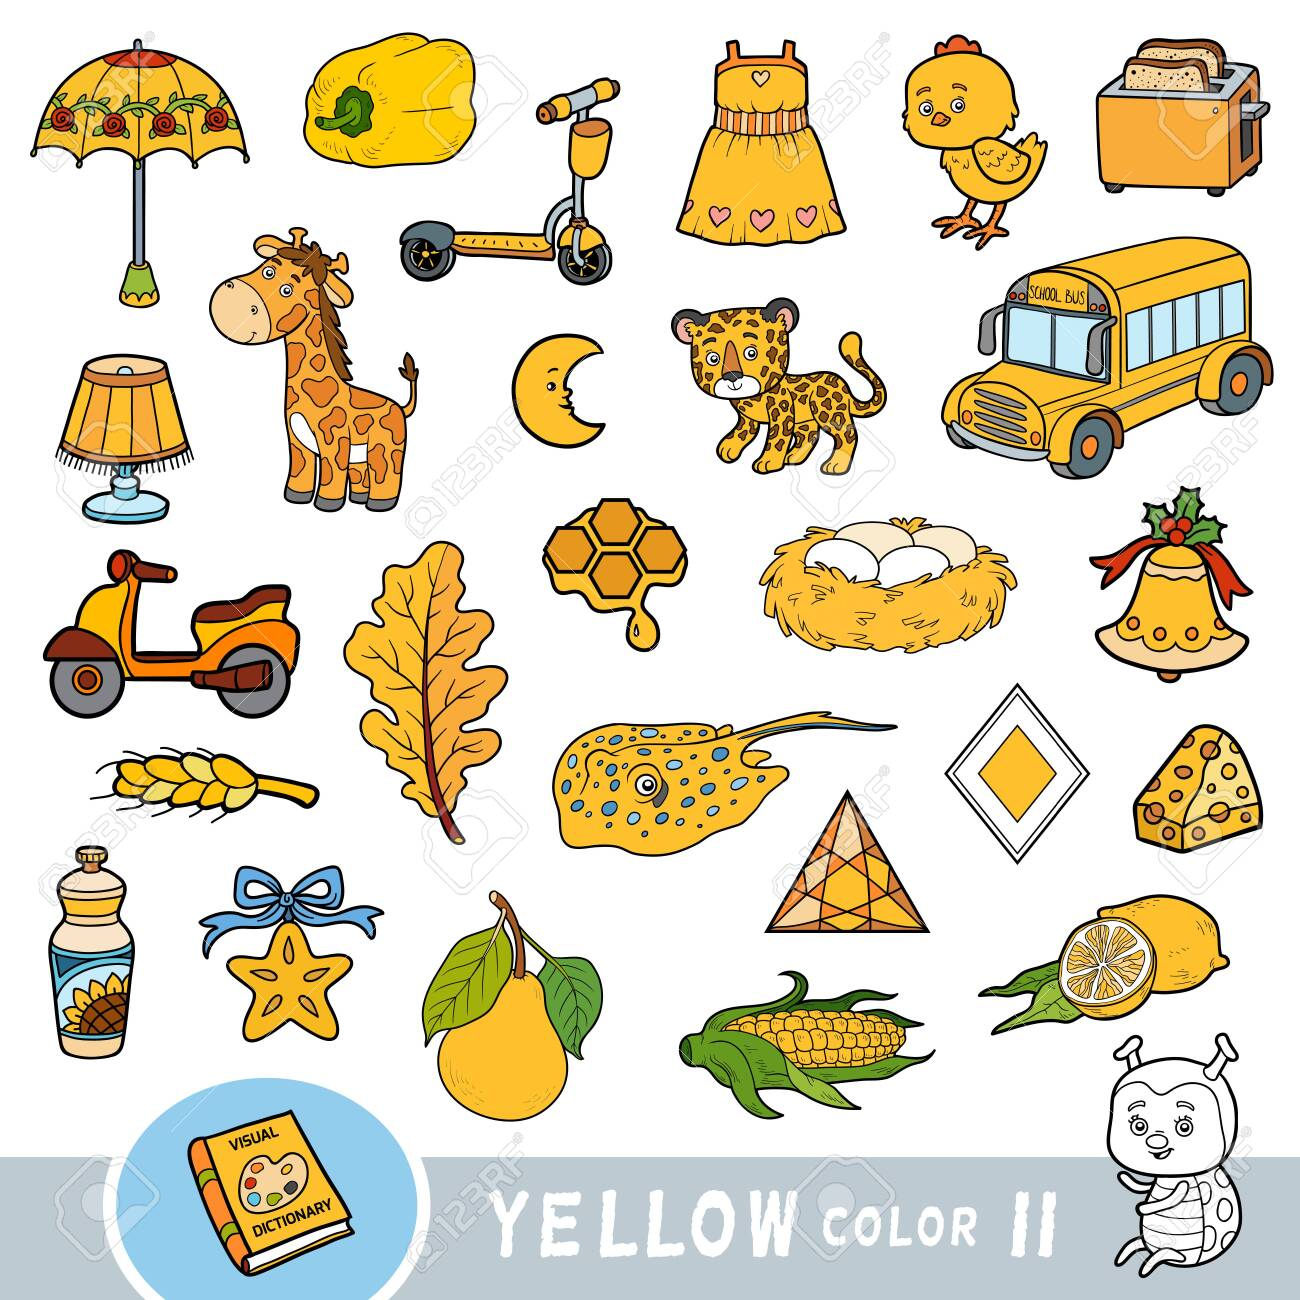 Colorful set of yellow color objects. Visual dictionary for children about the basic colors. Cartoon images to learning in kindergarten and preschool - 136781249